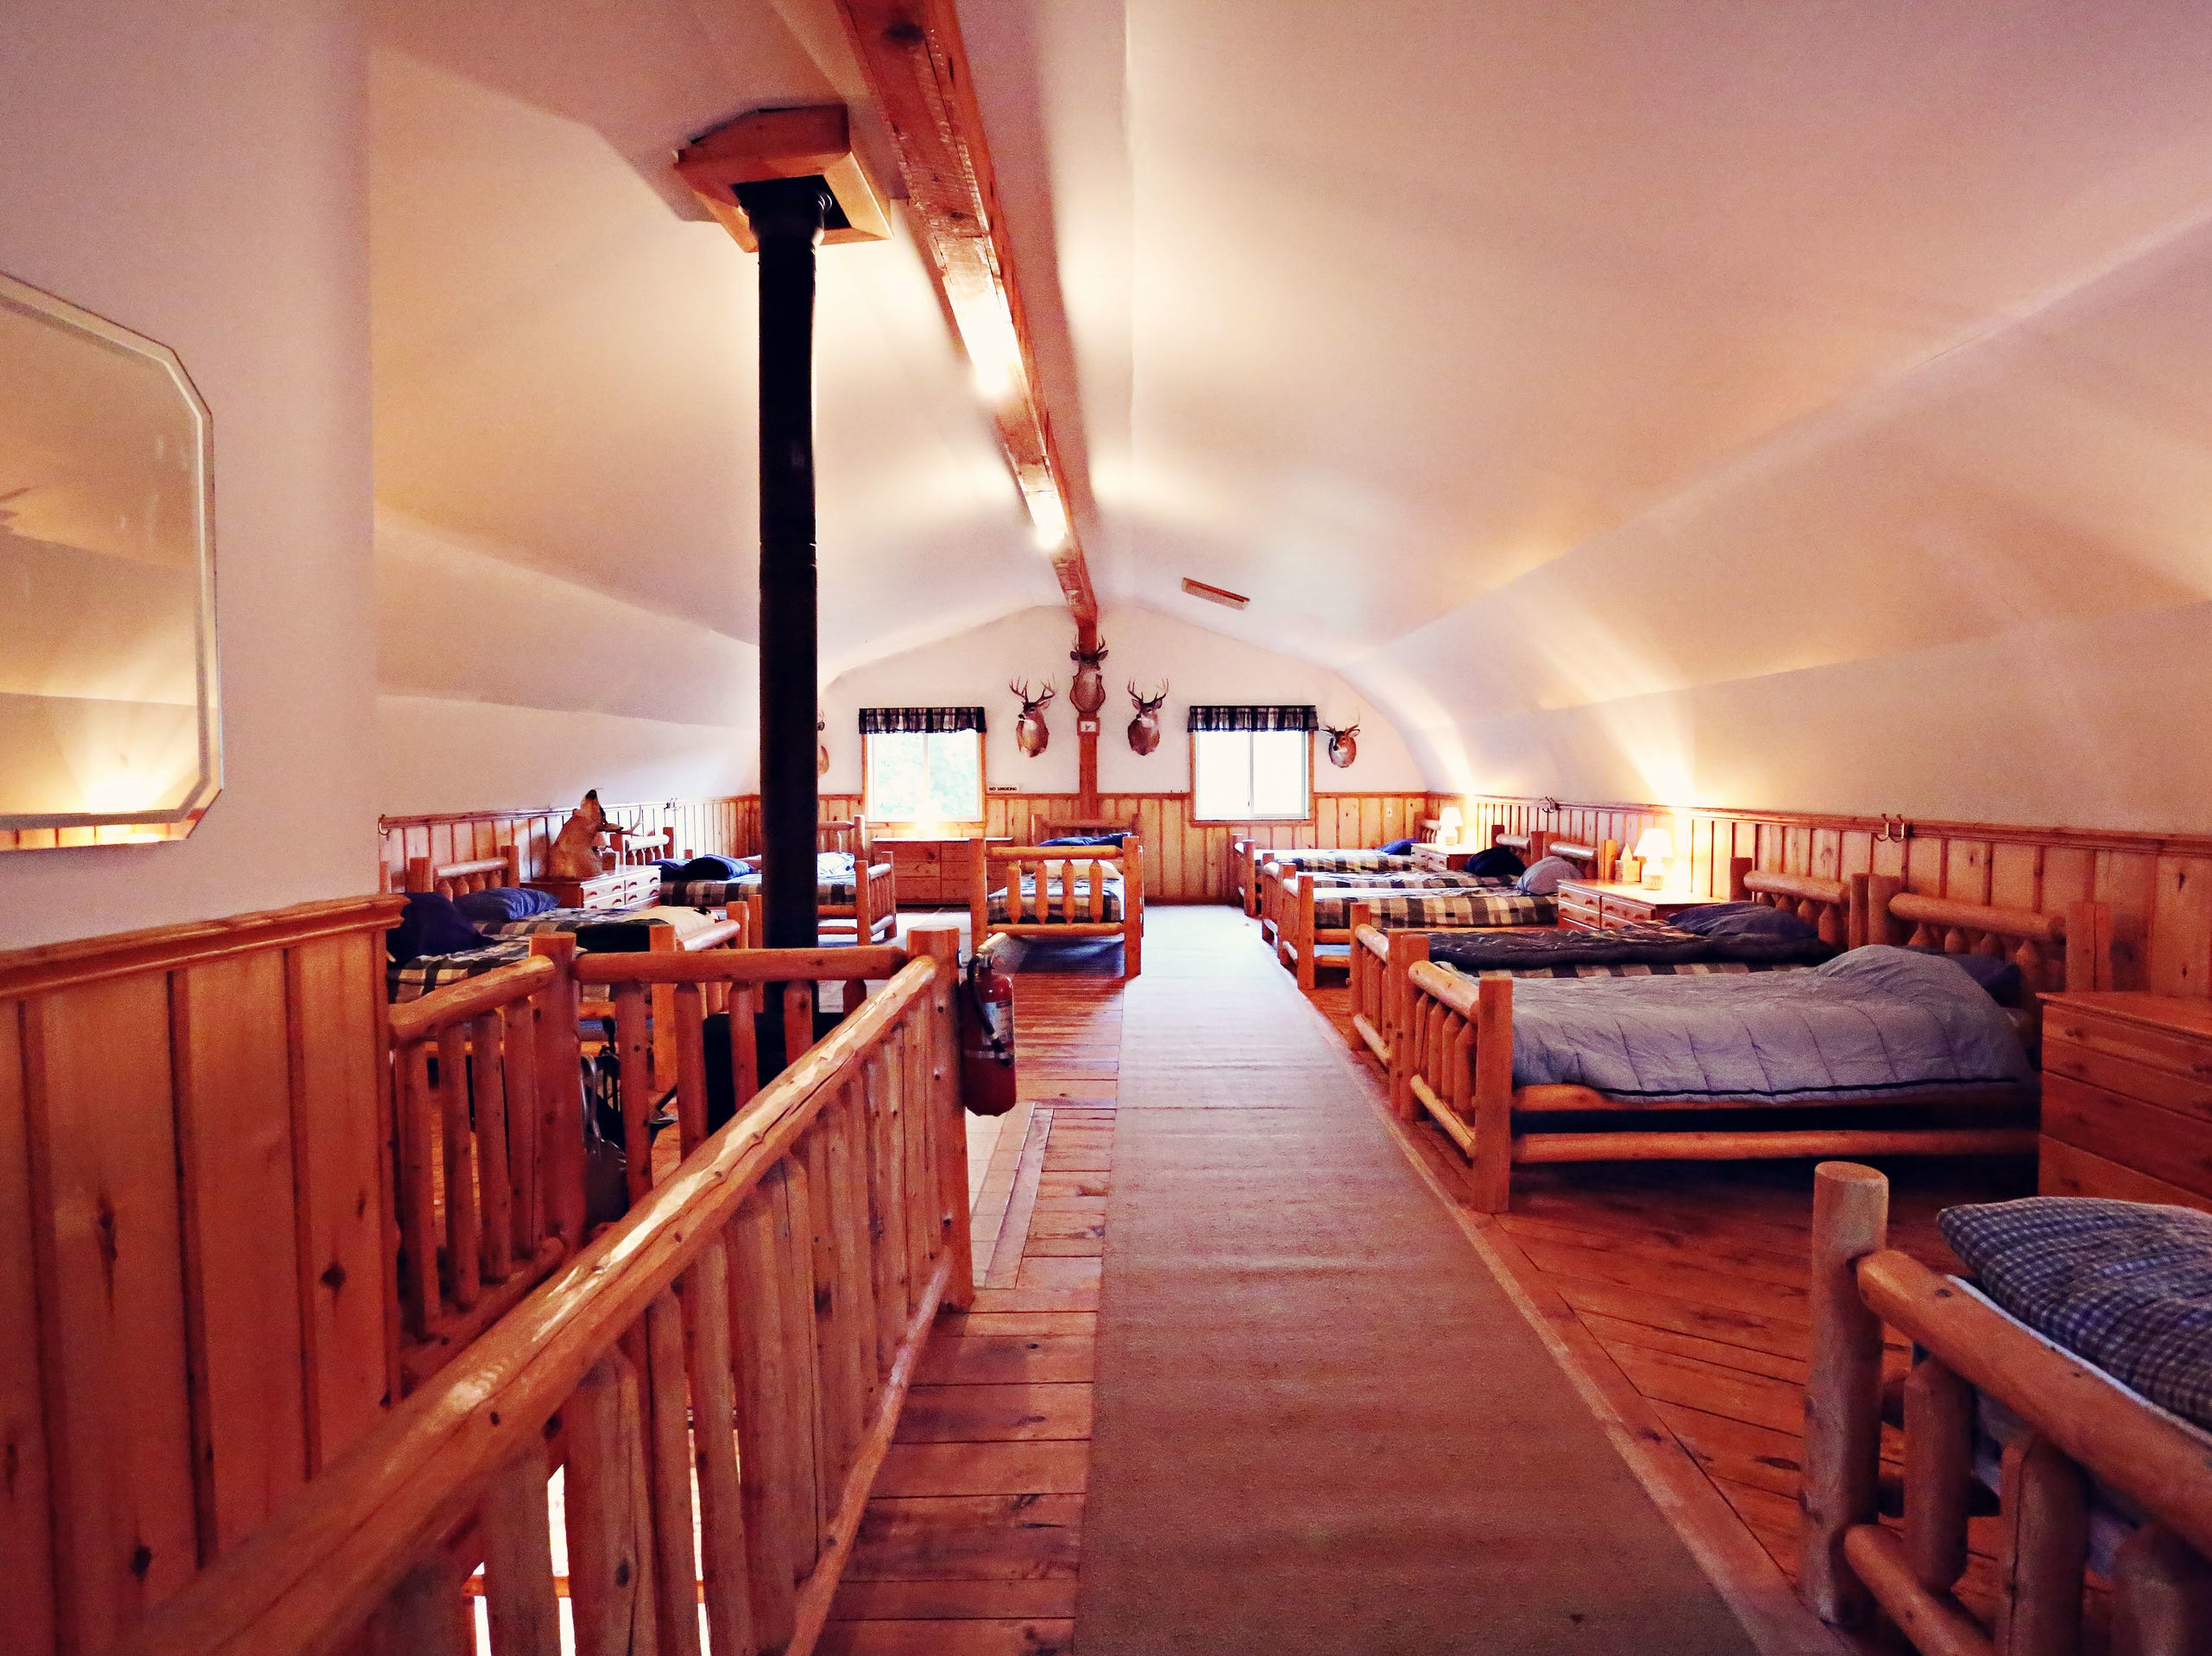 In addition, a two-story club house called the Antler's Inn sits down the road from the lake house. The house has a full kitchen, pool table, shuffle board table and a fireplace. The inn's second-floor has a full bathroom, a wood-burning stove and can sleep 14 comfortably.